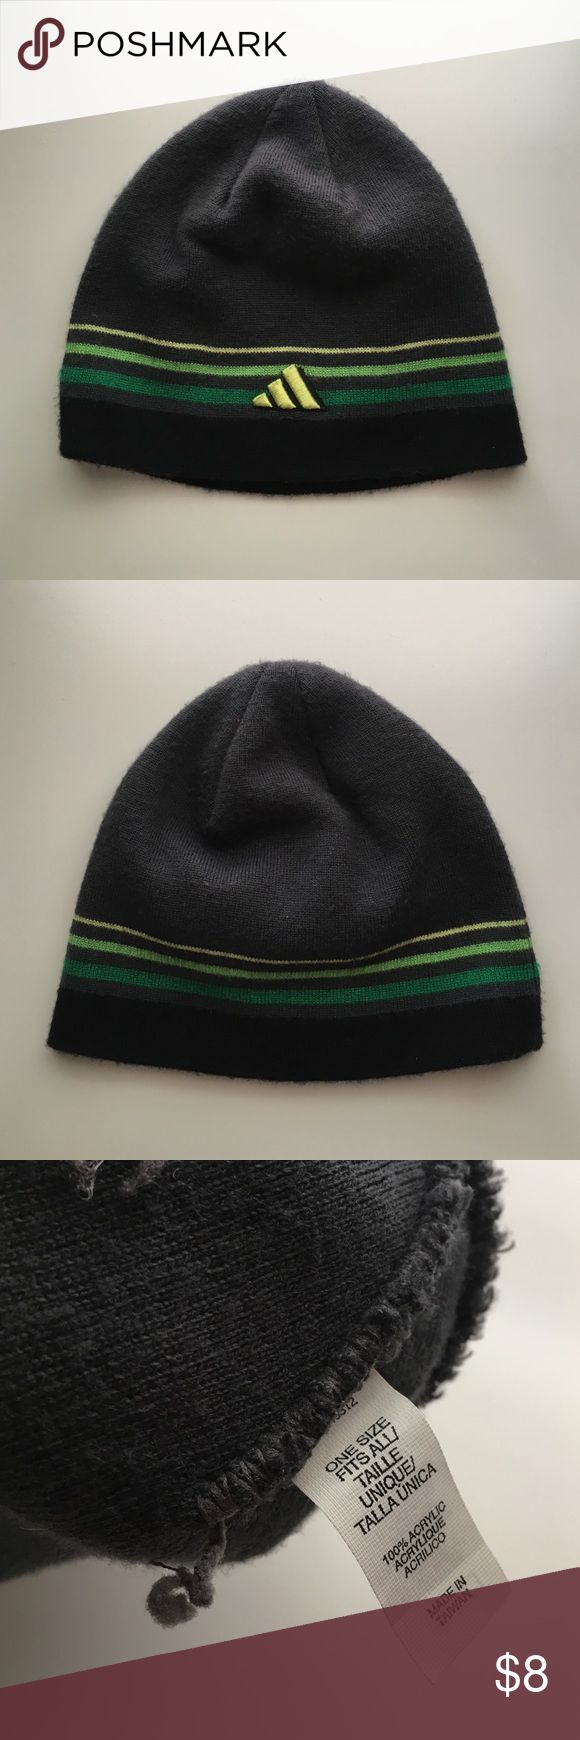 Adidas Beanie Green, black and gray beanie with logo. One size fits all. adidas Accessories Hats